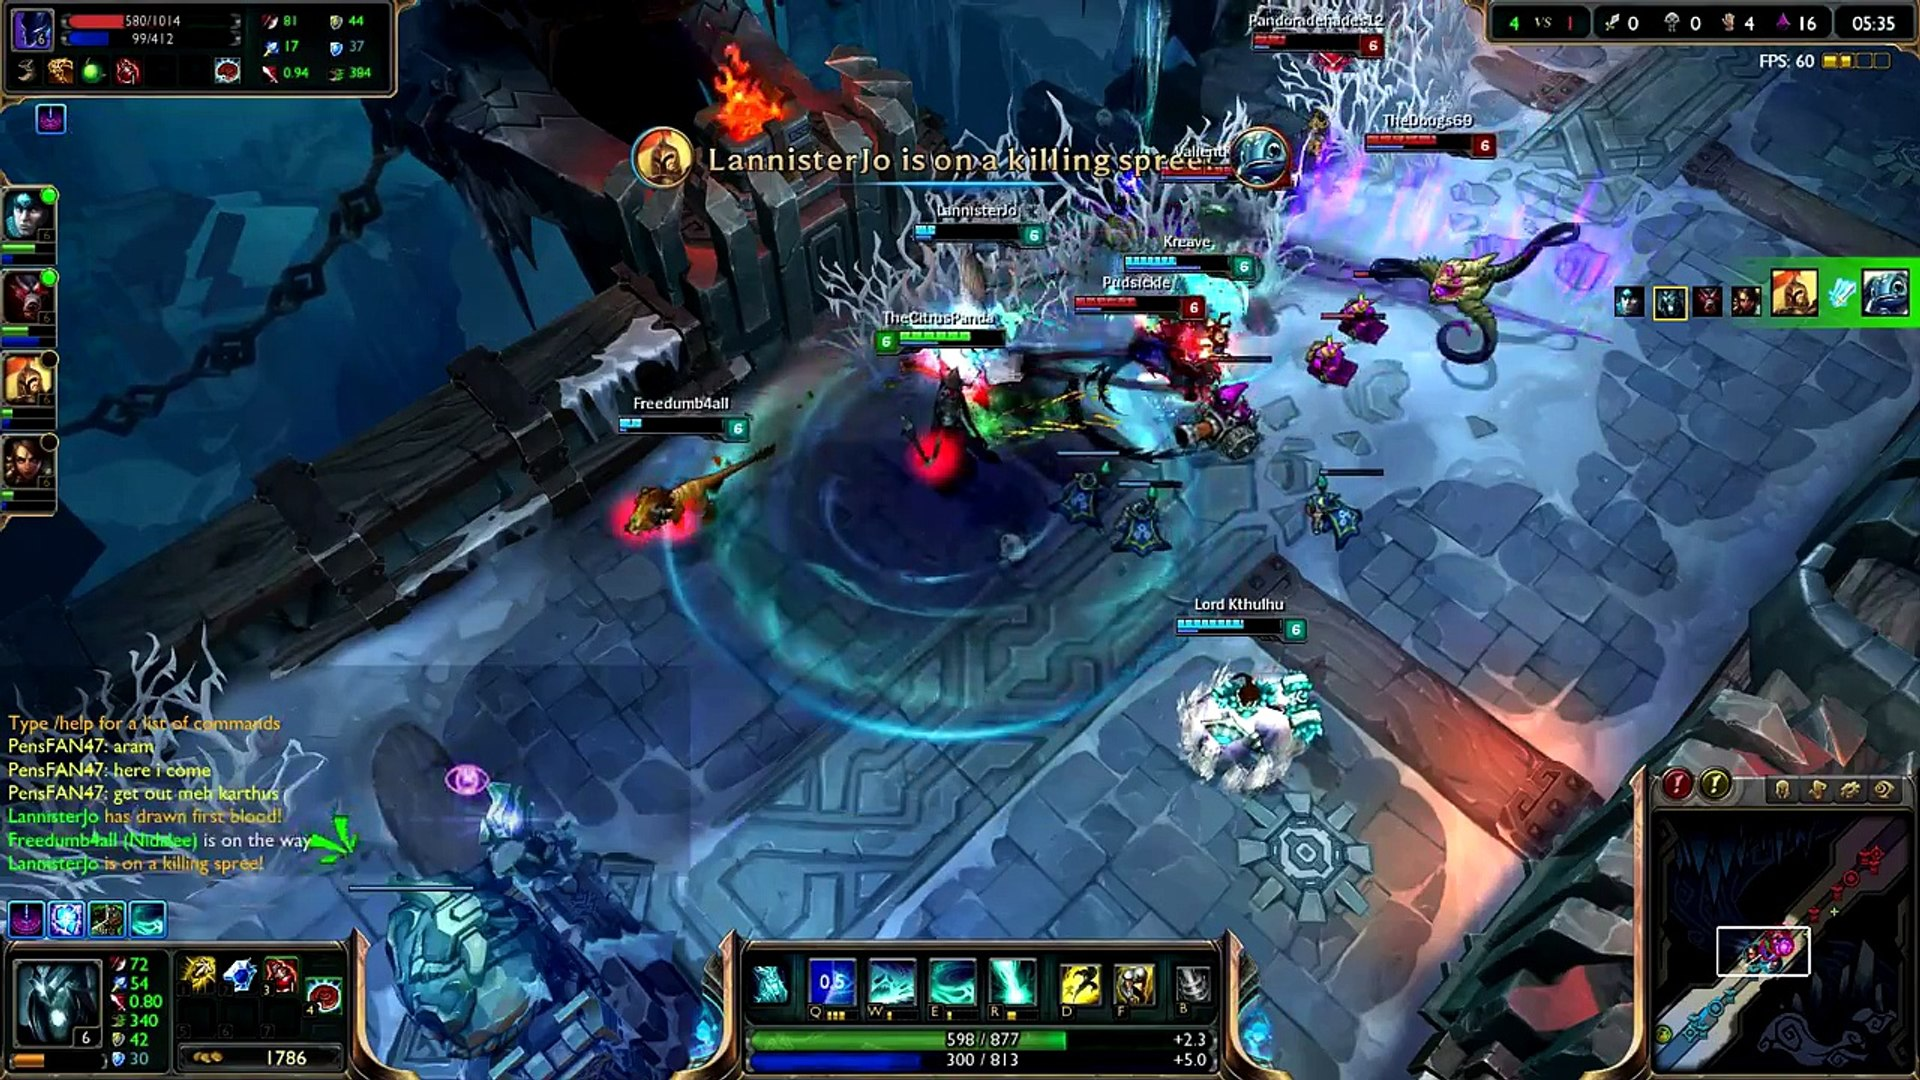 League Of Legends Karthus Aram Commentary Video Dailymotion Spawn karthus is totally viable in aram from the steady experience and gold.remember, last hitting is for plebs and just press r. dailymotion